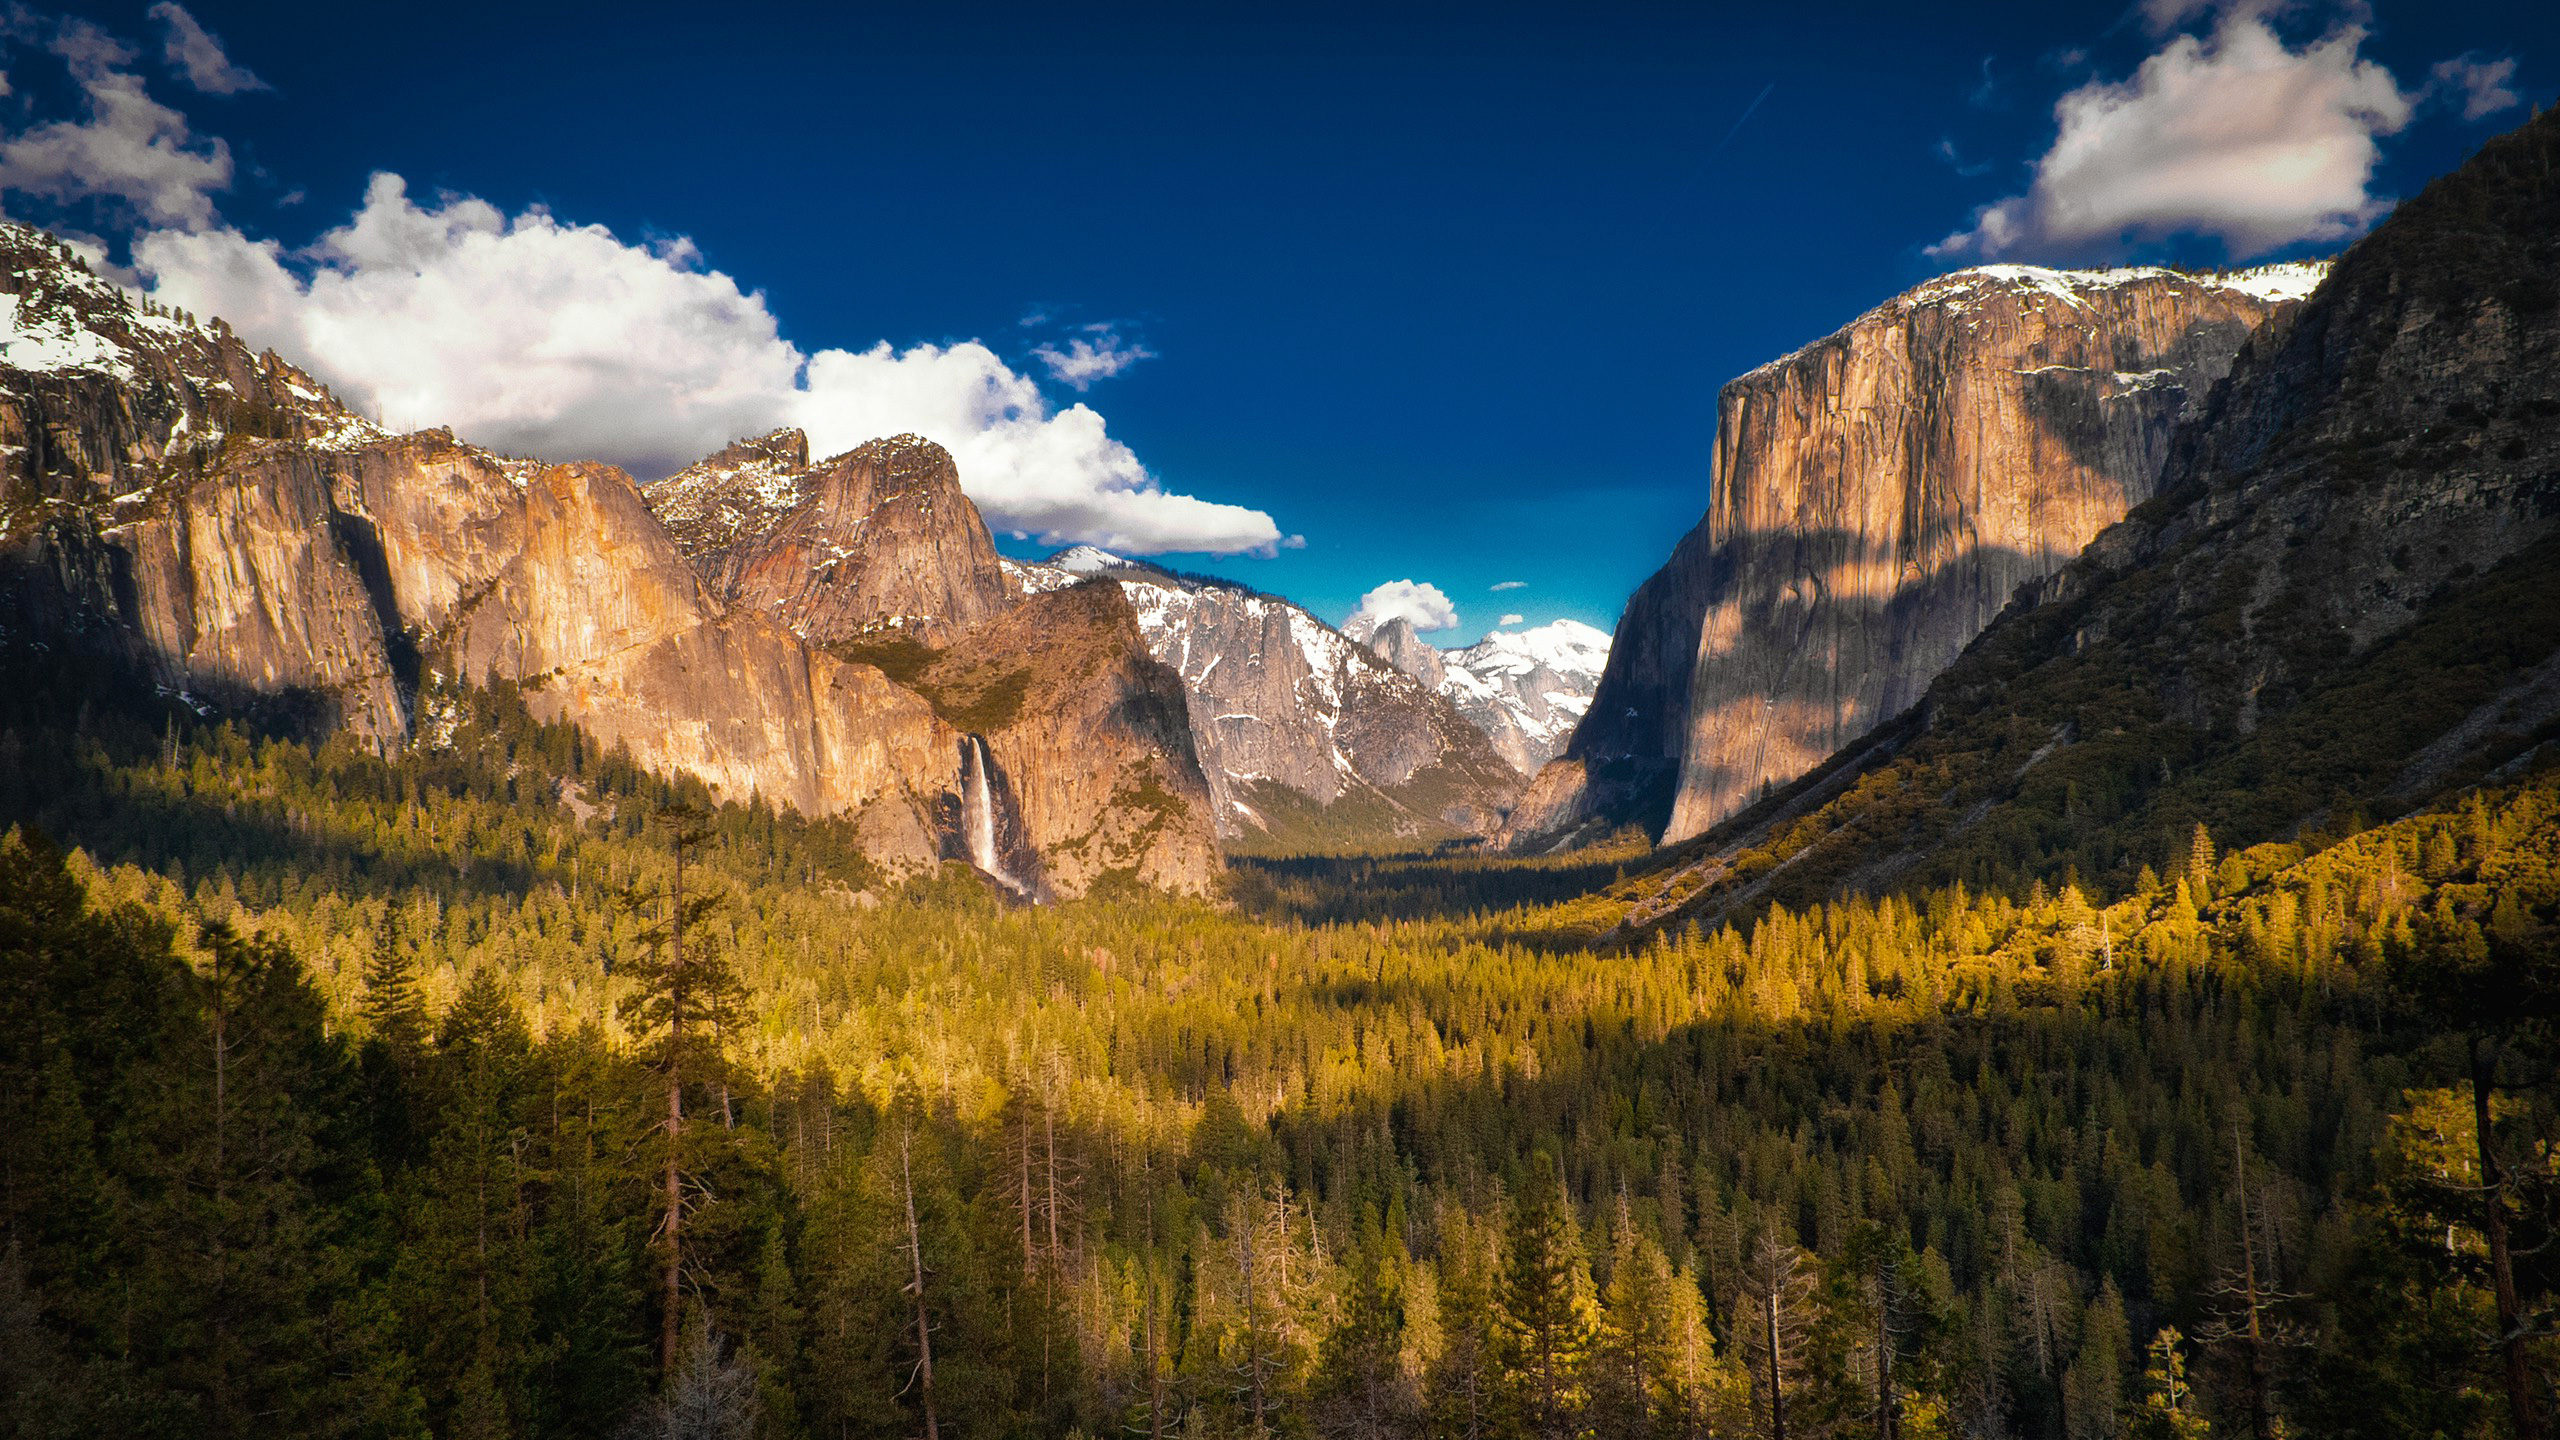 43 yosemite wallpaper widescreen on wallpapersafari - Yosemite national park hd wallpaper ...